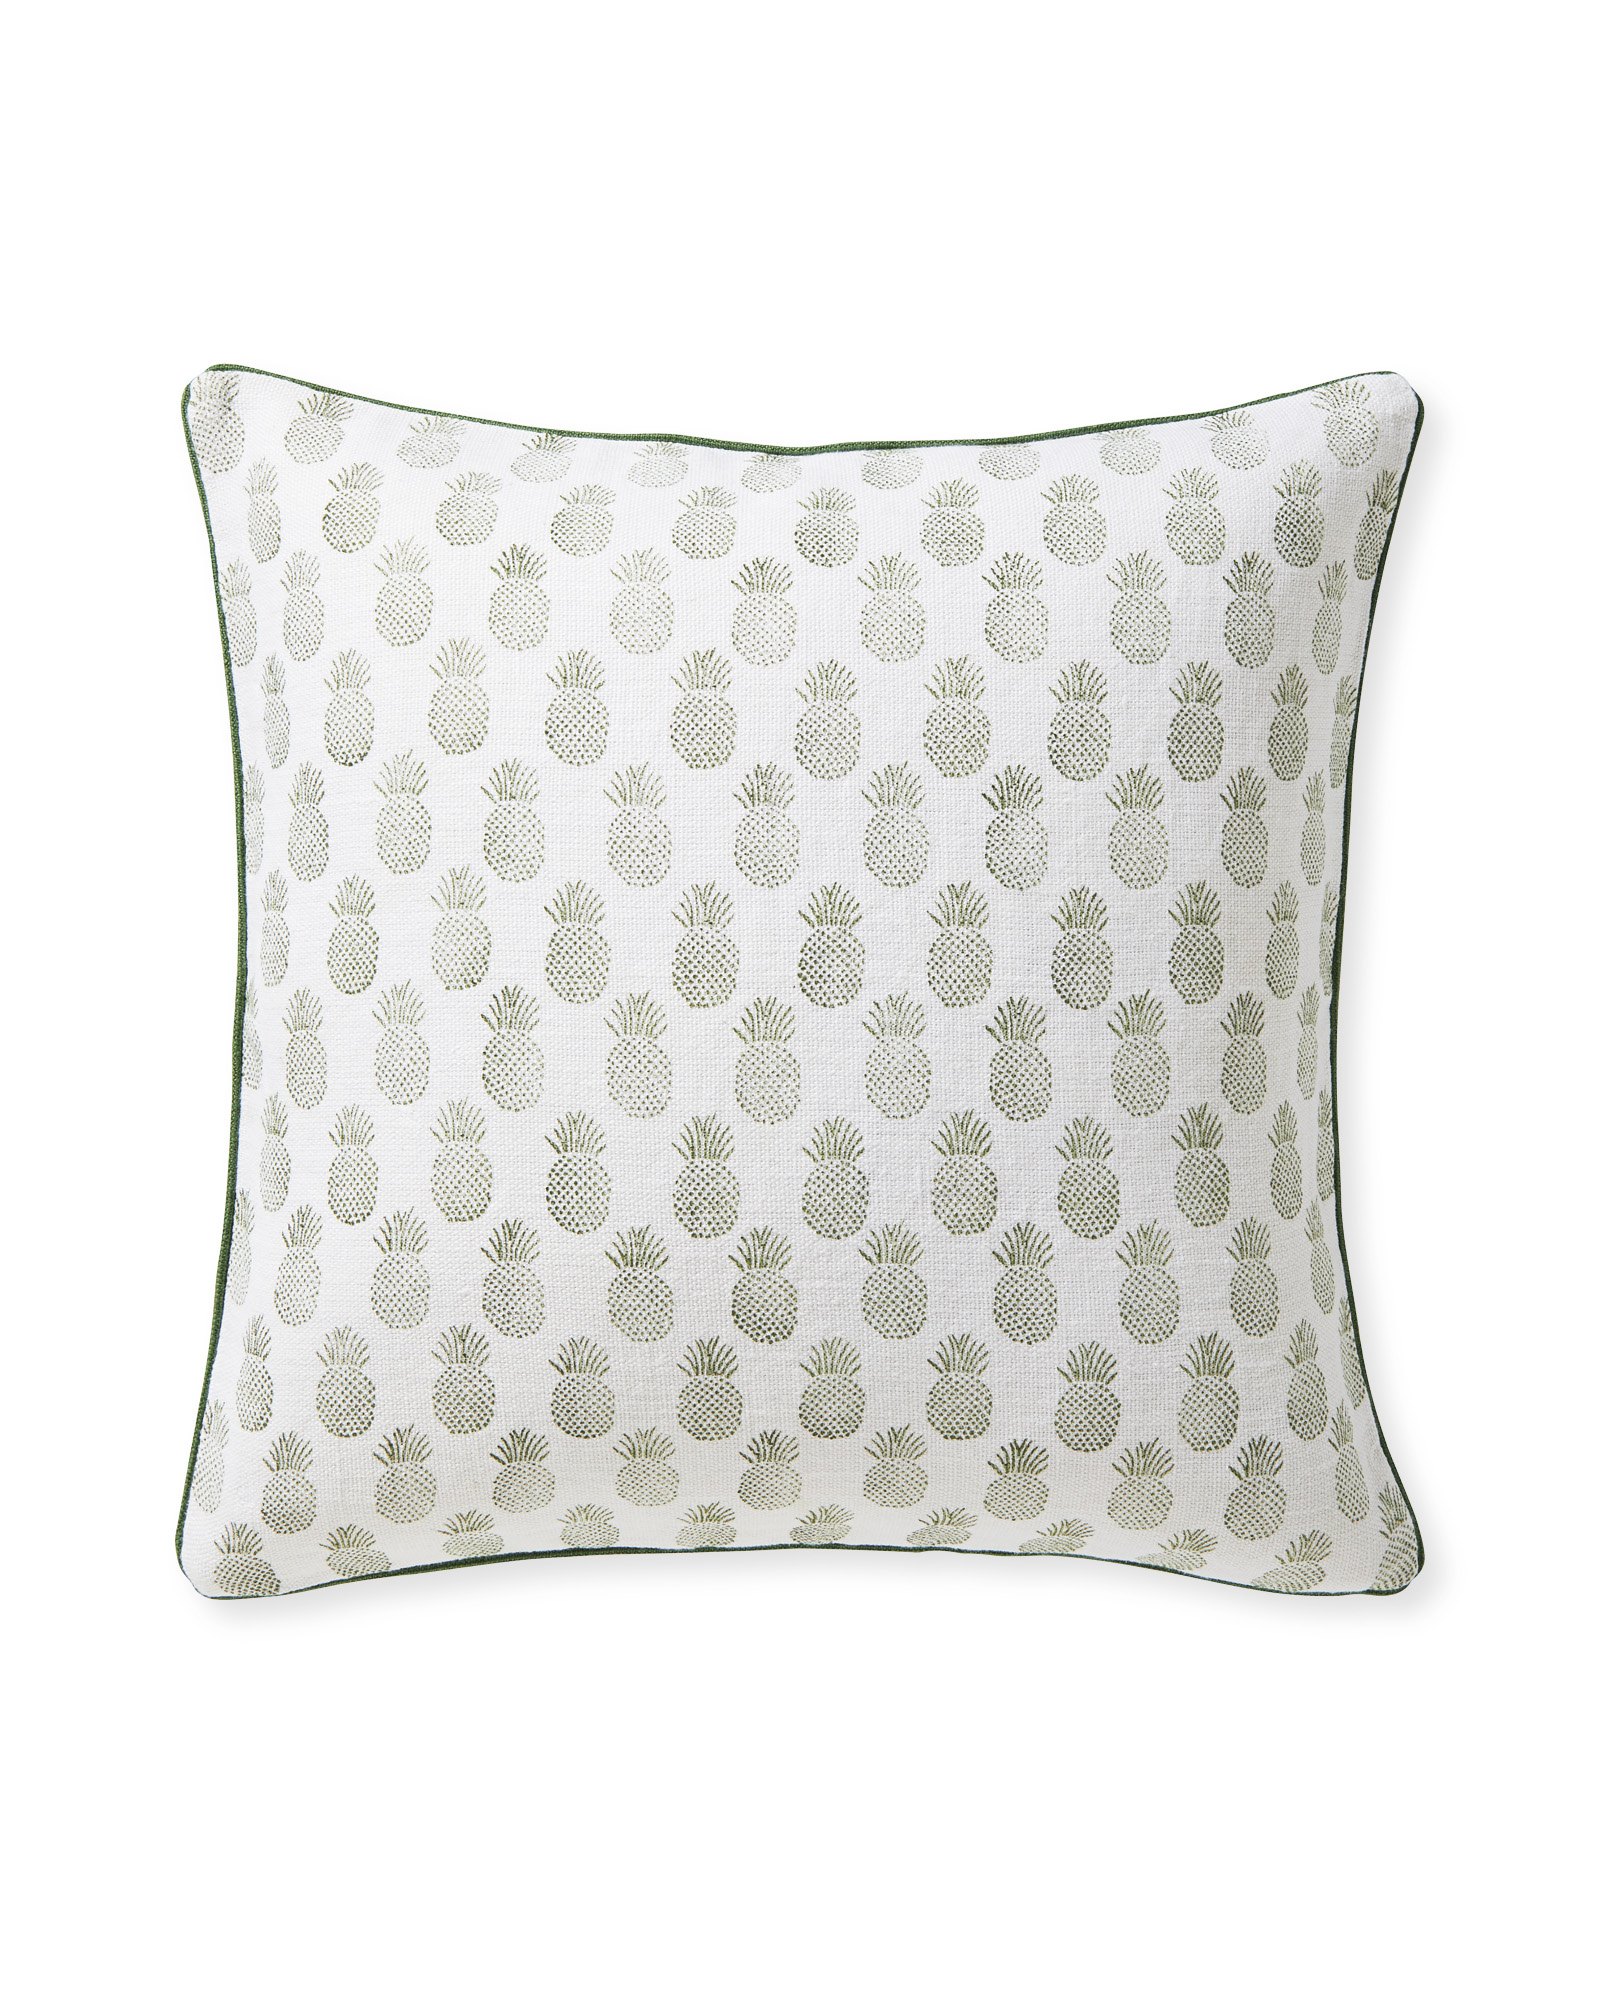 Isla Printed Pillow Cover, Moss